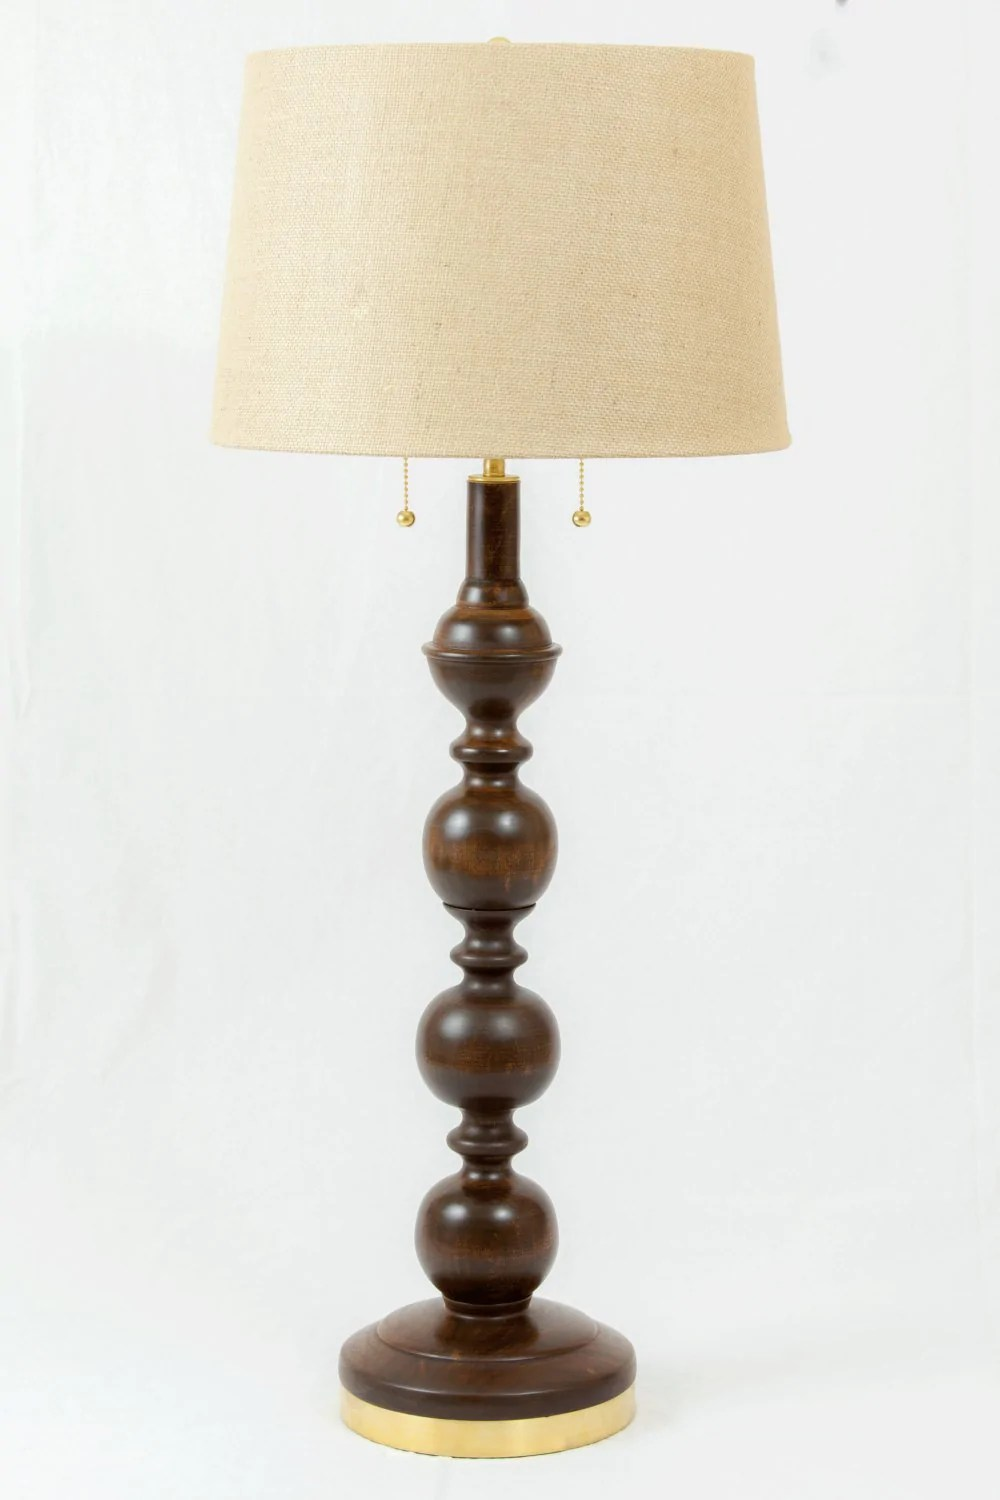 Floor Table Lamps Cherry Floor And Table Lamp Set 2 Table Lamps 1 Floor Lamp Handmade